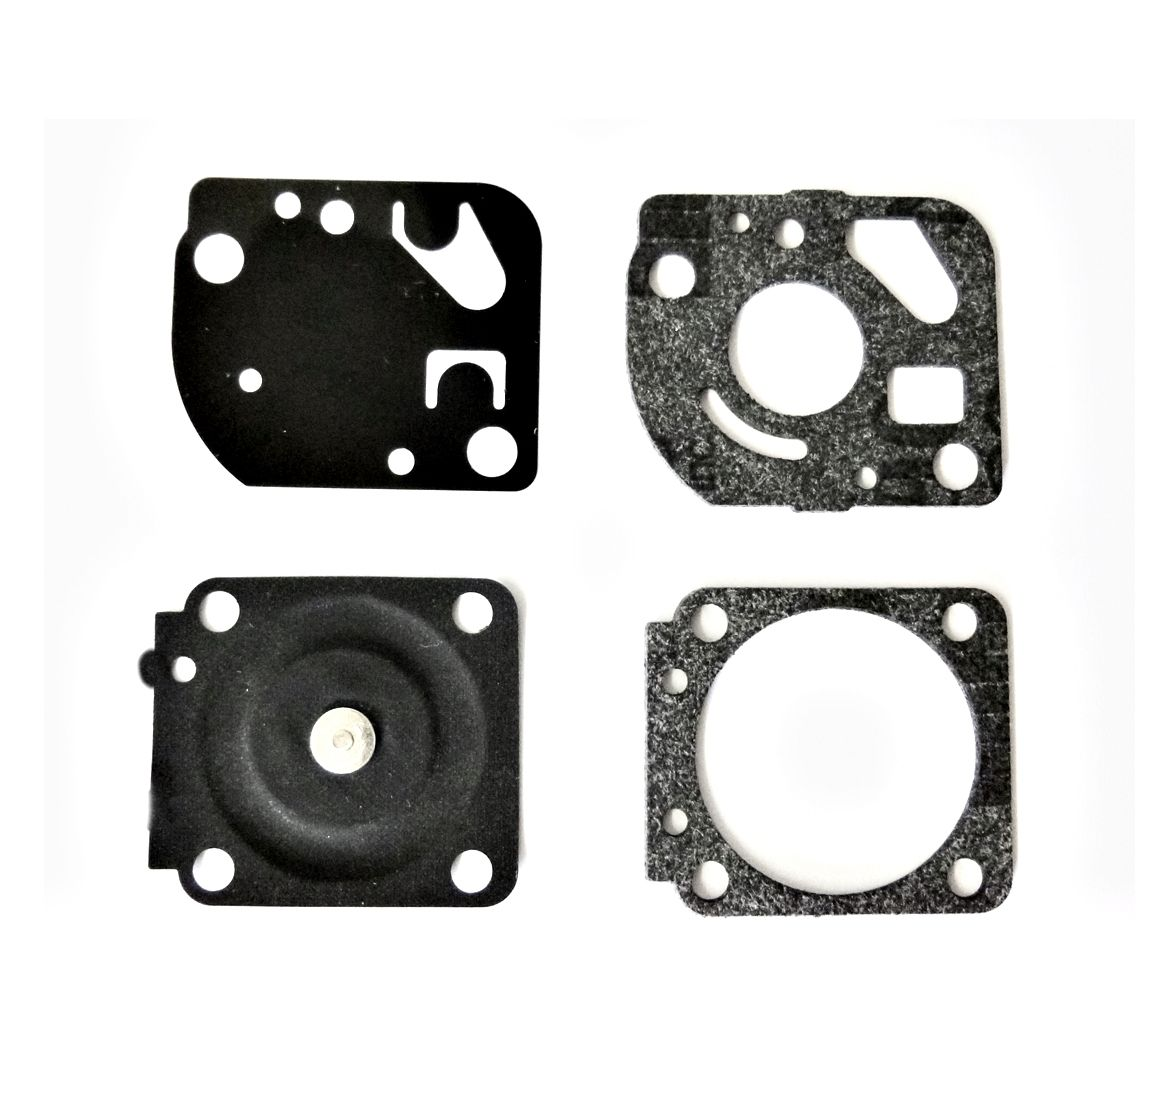 Homelite Chainsaw Parts And Spares Fuel Filter 360 Carb Diaphragm Gasket Kit Hcs3335 Hcs3535 Csp3314 For